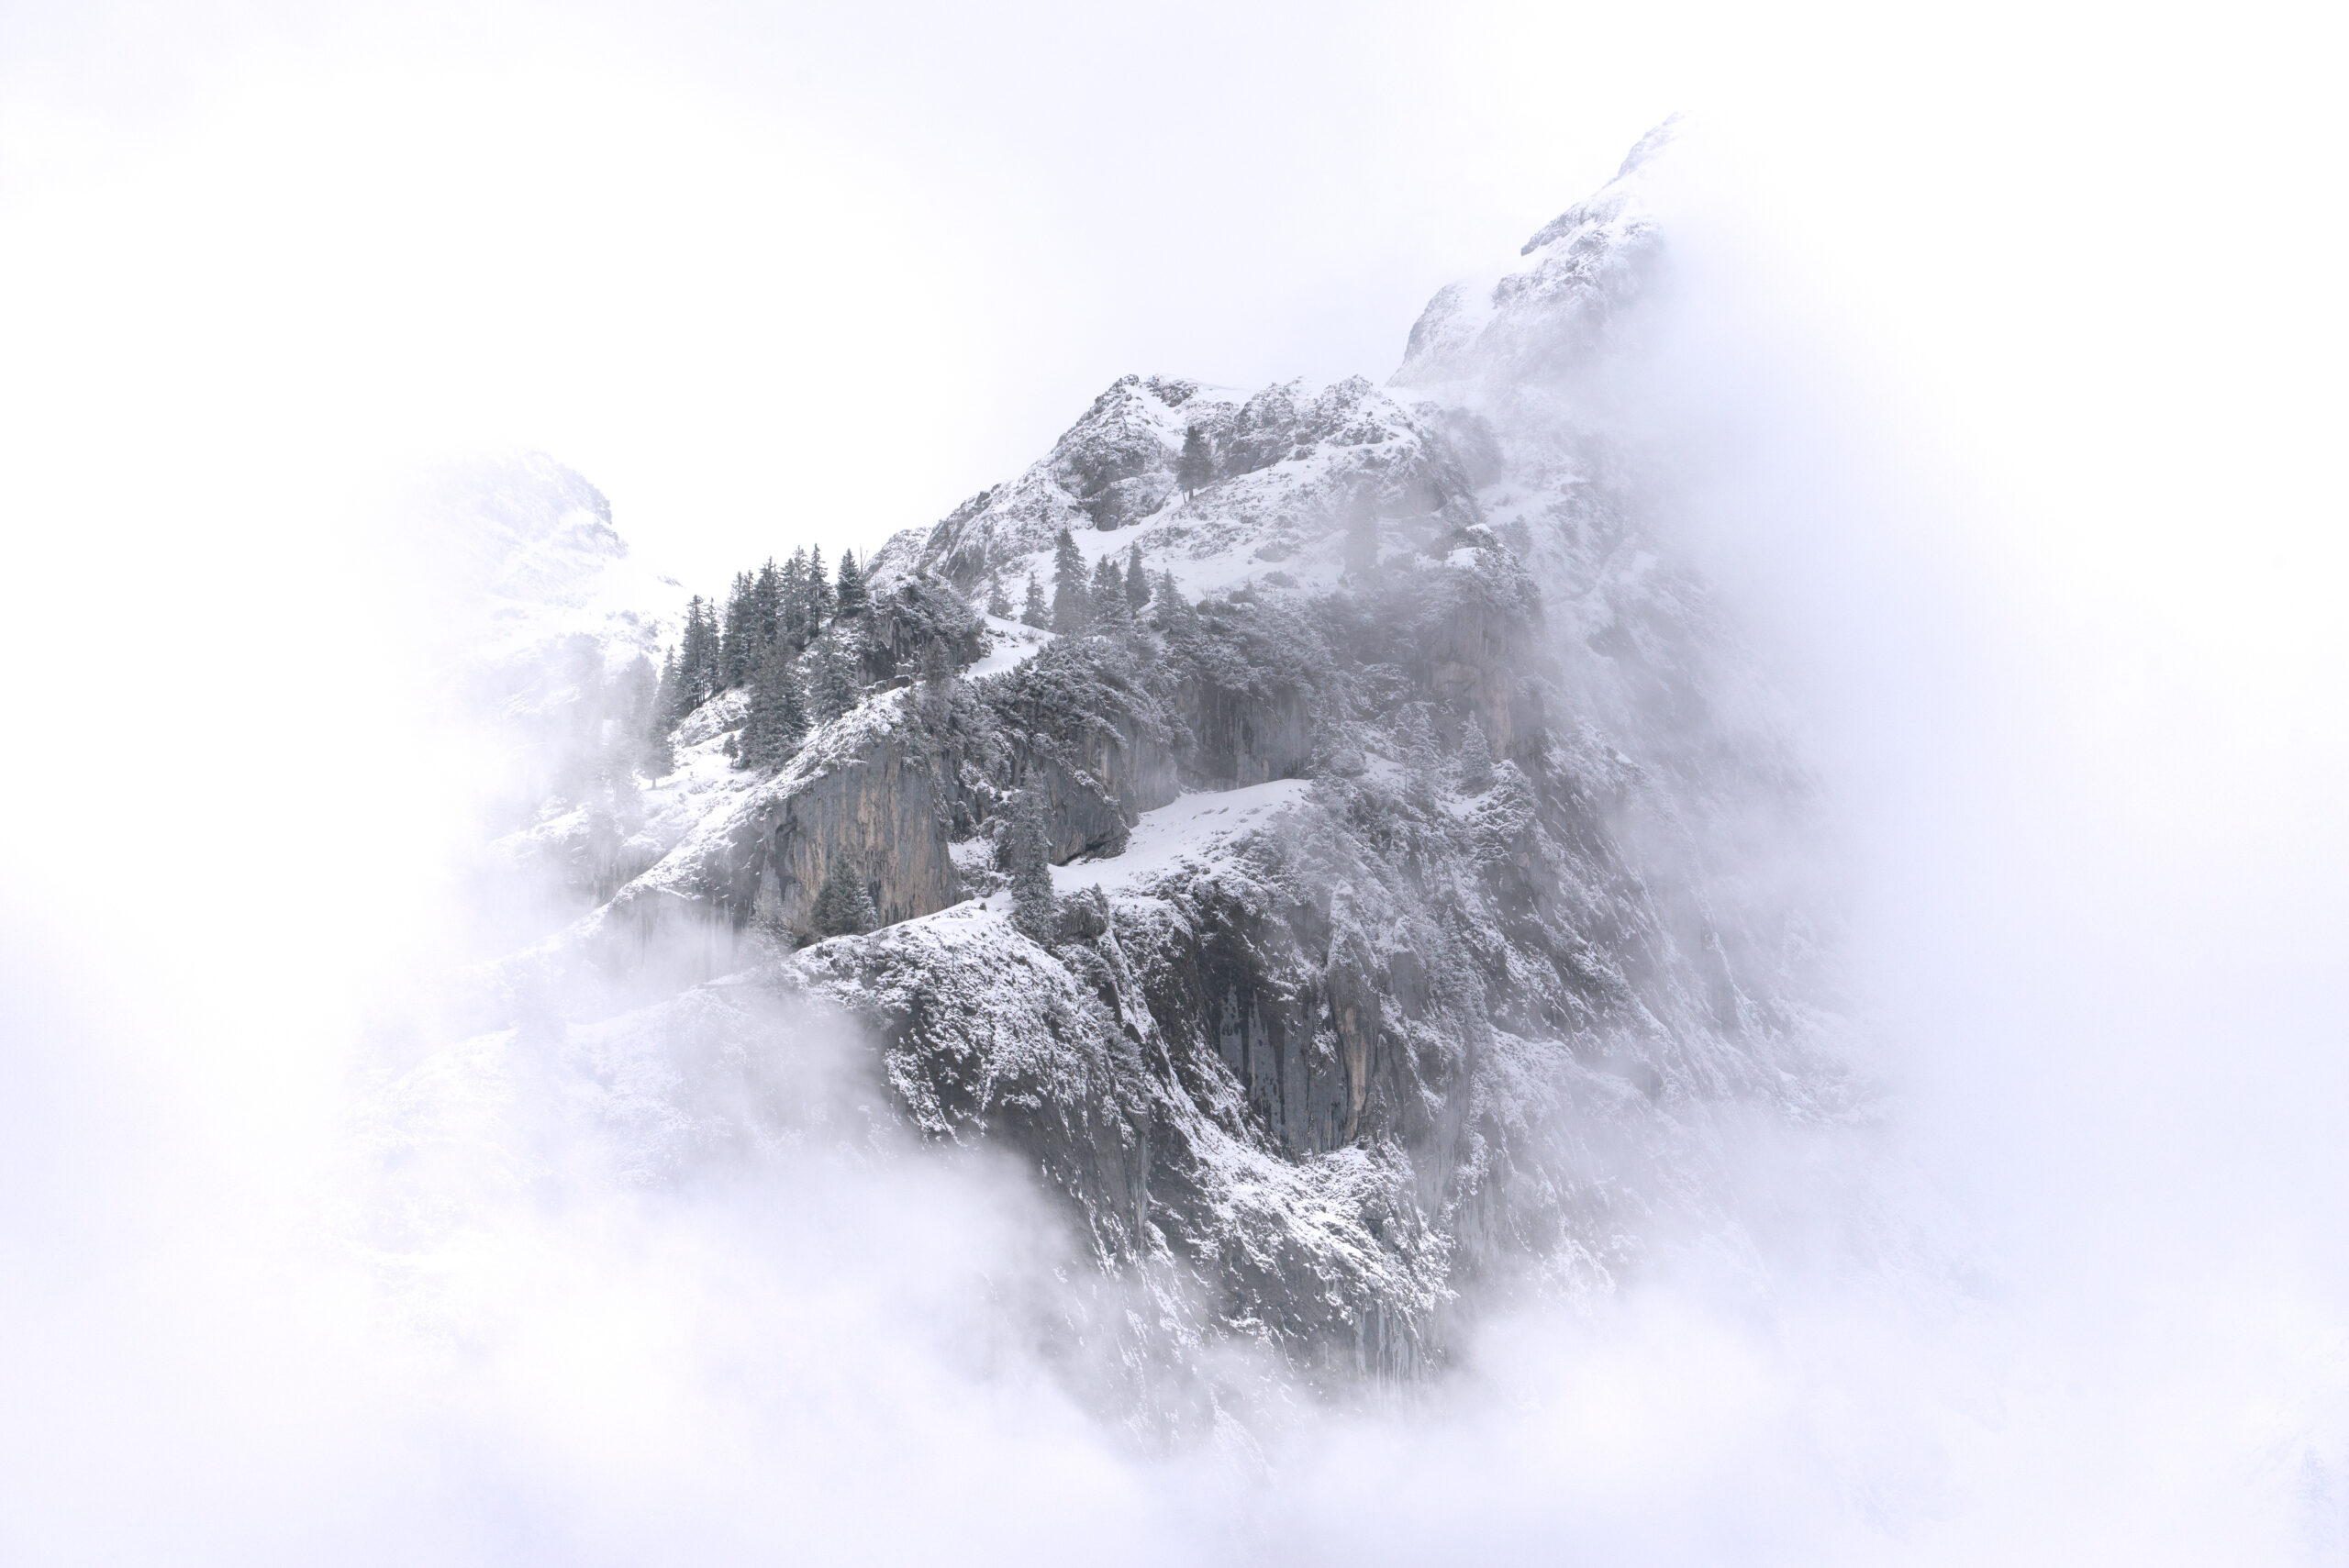 Close up of snowy mountain peak in fog